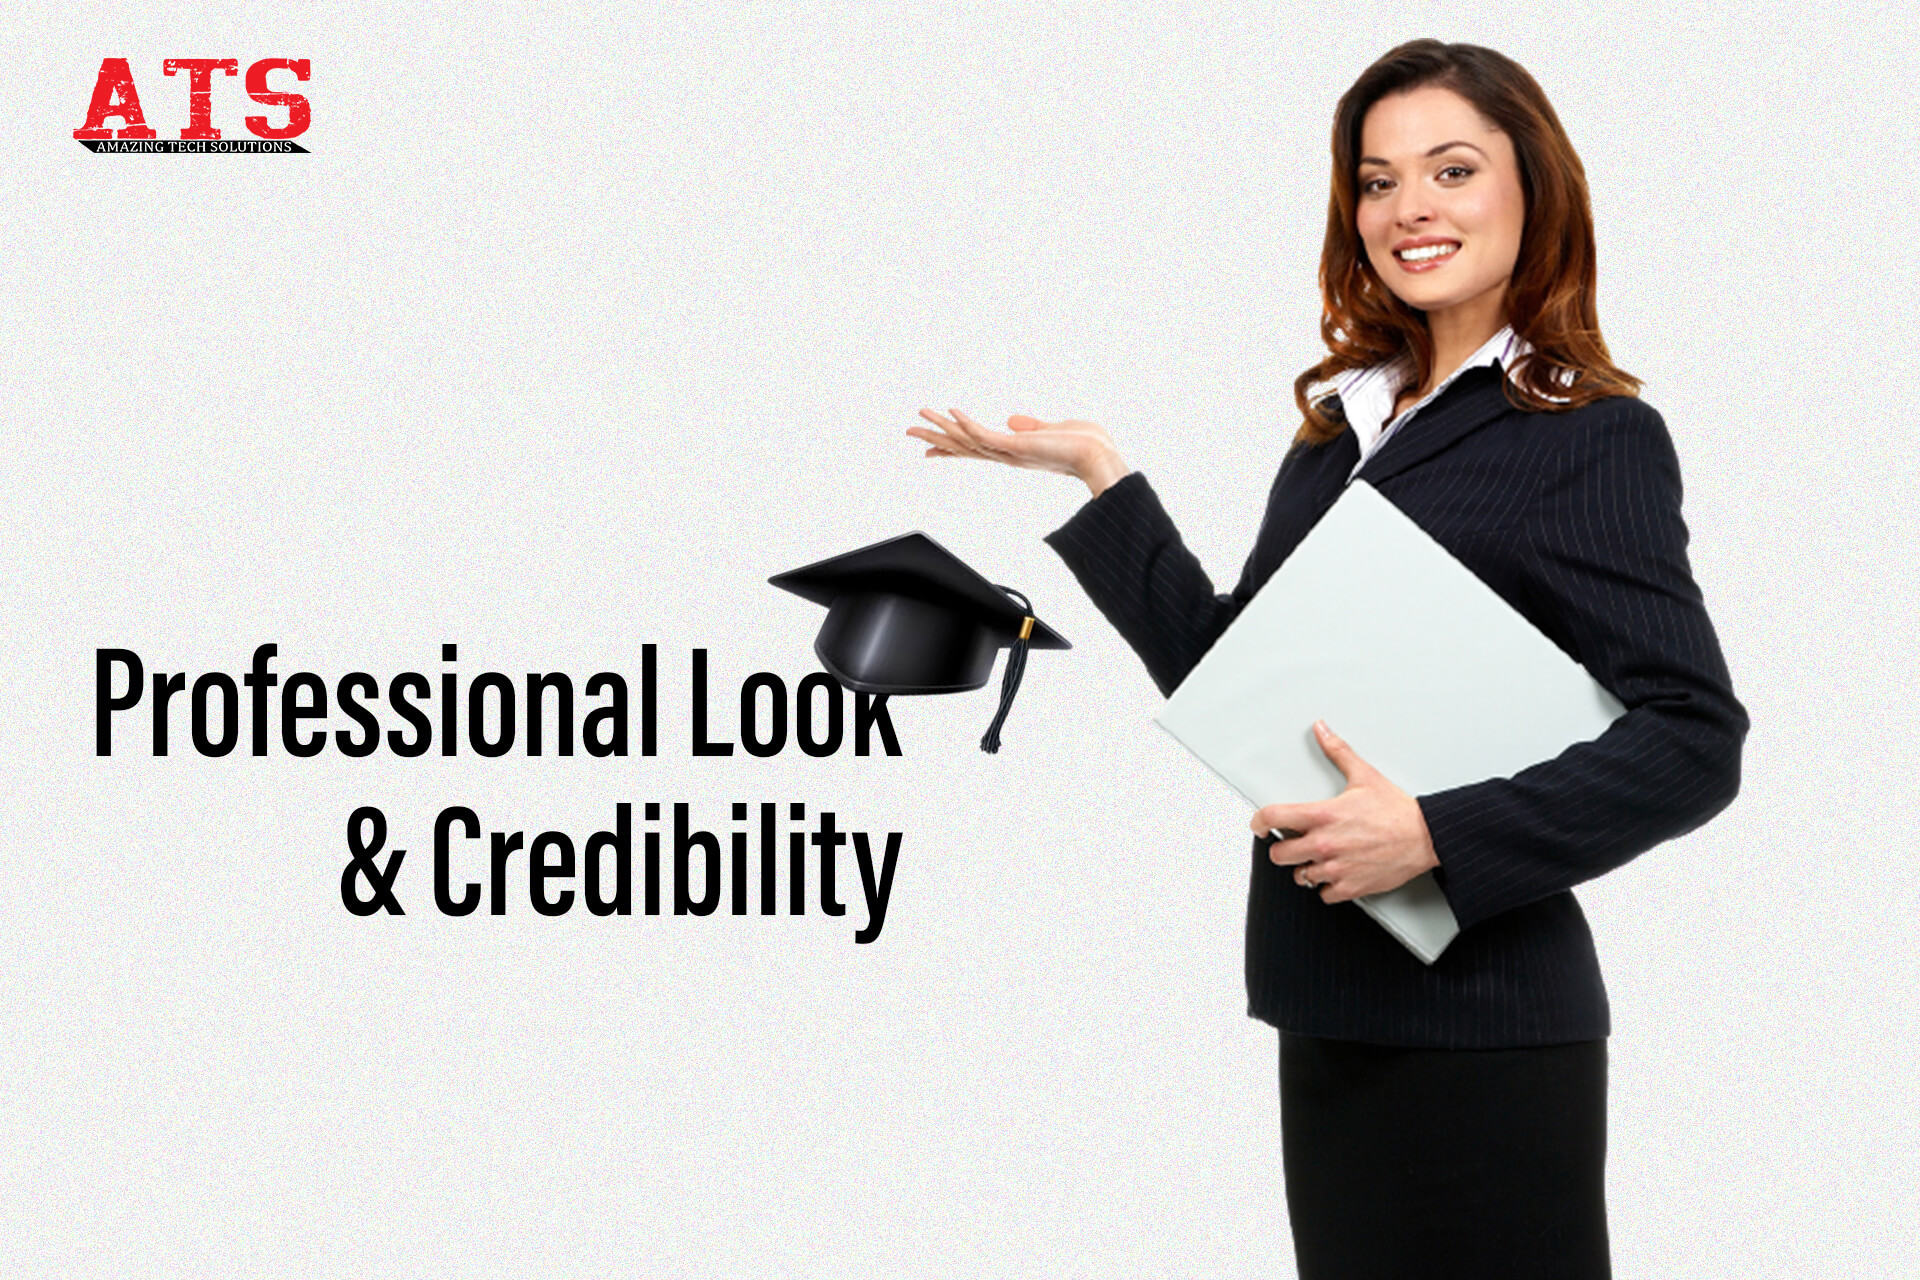 A Business Having Website Show Professional look and credibility